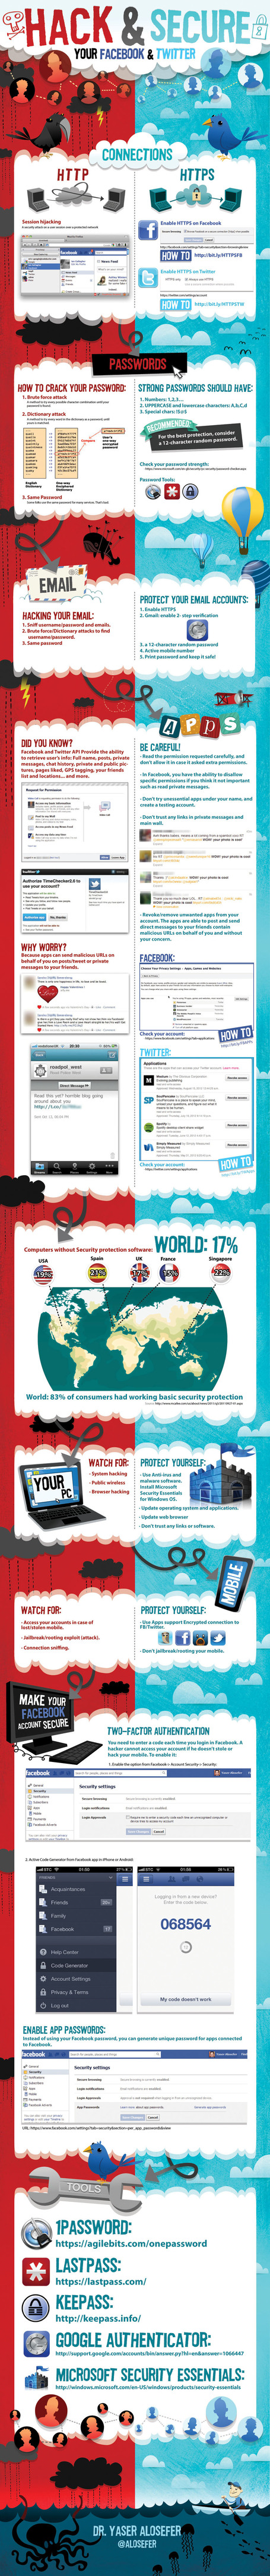 Secure and Hack your Facebook and Twitter (English) | Social Media and Web Infographics hh | Scoop.it